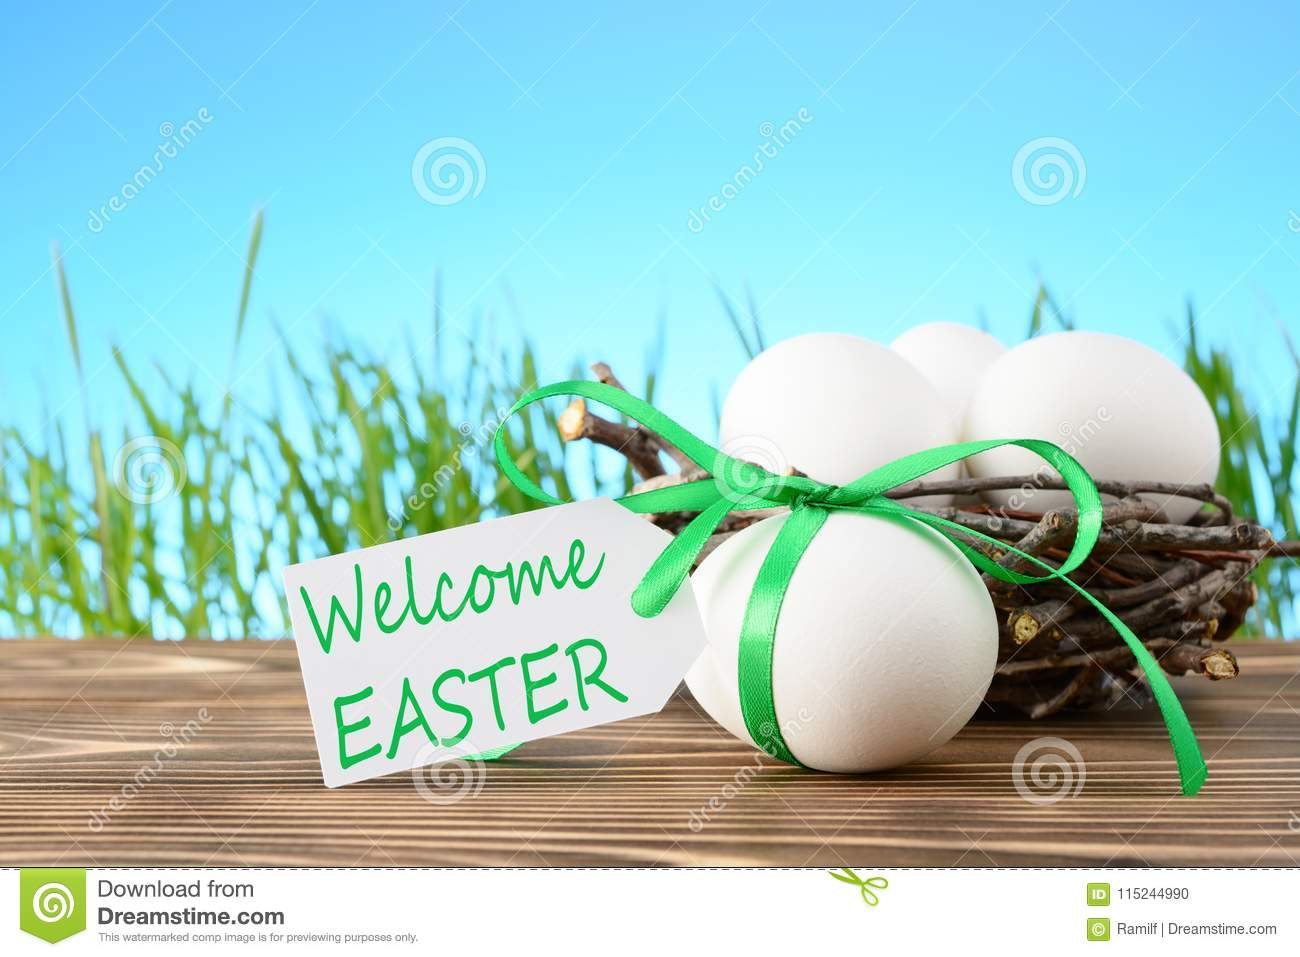 Chicken Eggs In Basket For Easter Stock Photo - Image of nature ...